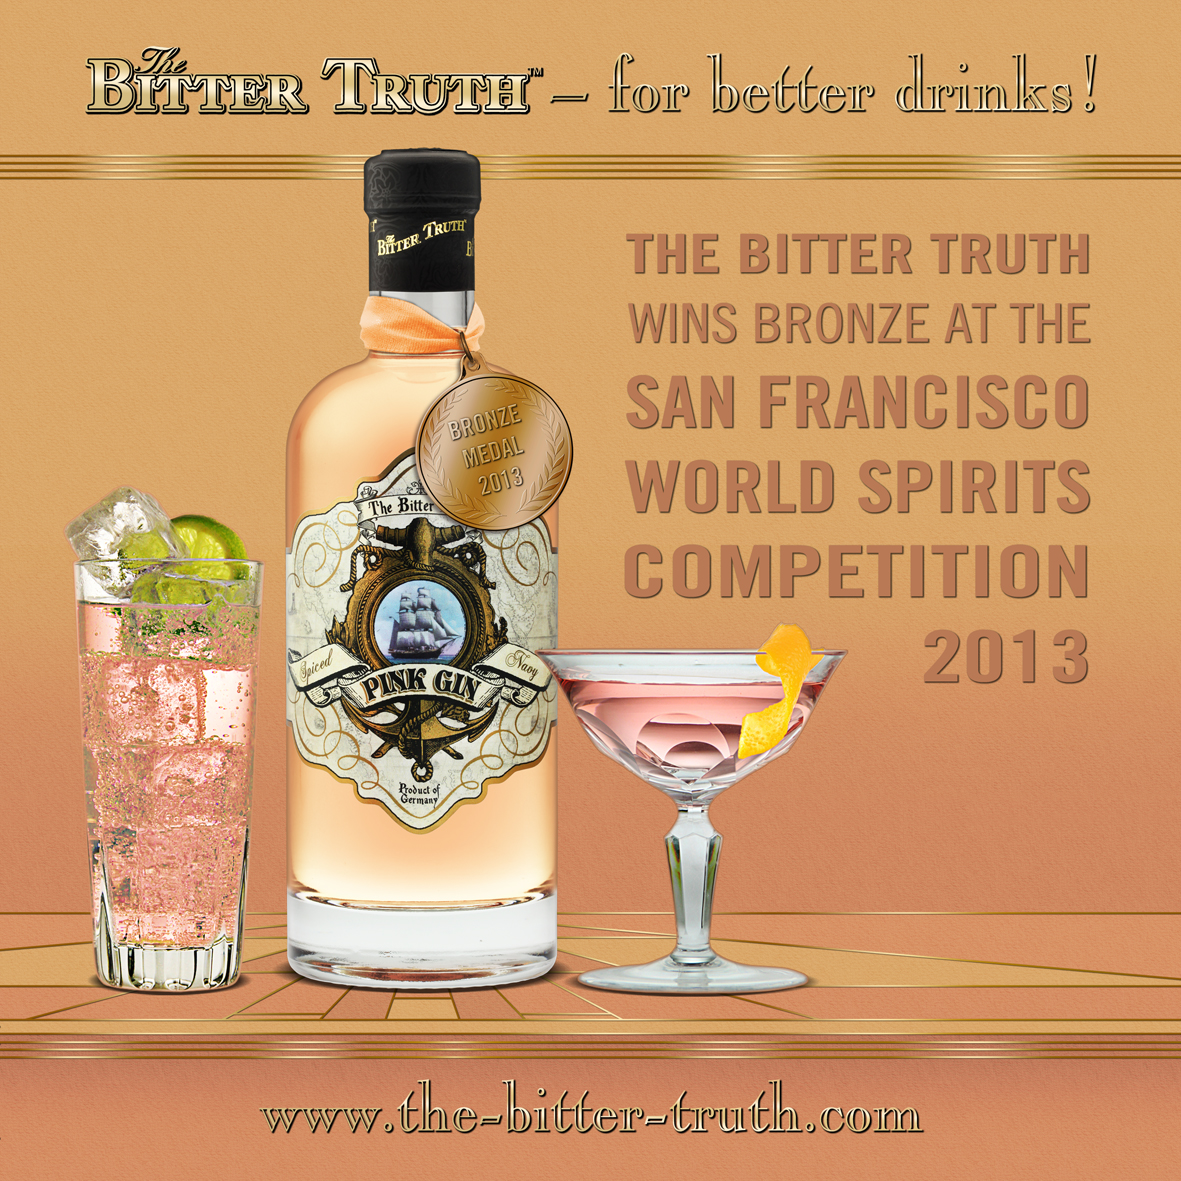 The Bitter Truth - Pink Gin wins bronze medal at The San Francisco World Spirits Competition